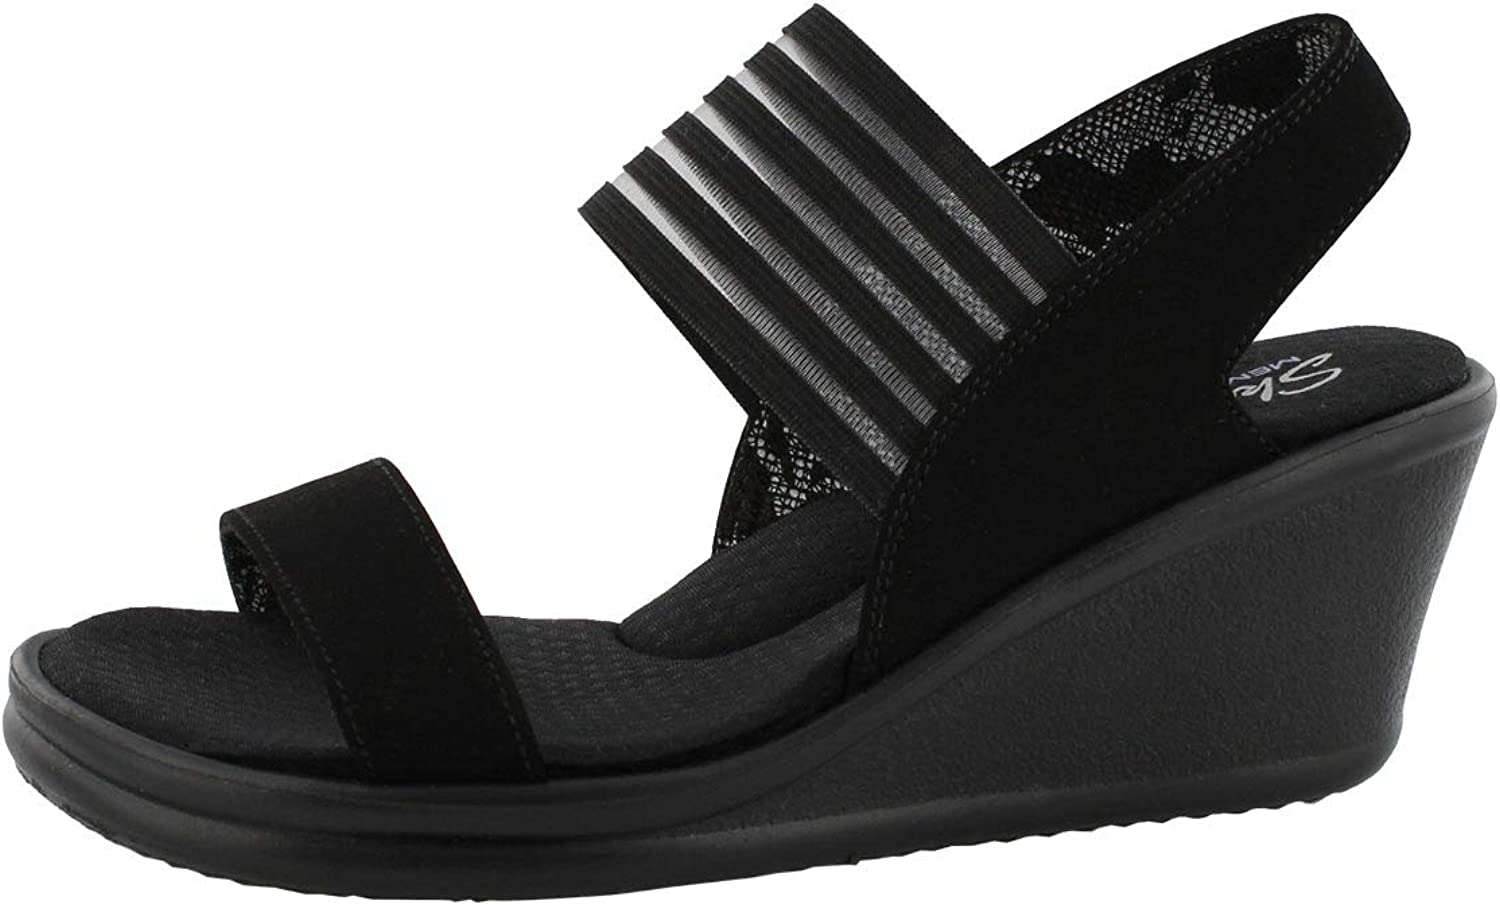 Skechers Women's Rumblers Sci-Fi Sling Back Wedge Sandal- Wide